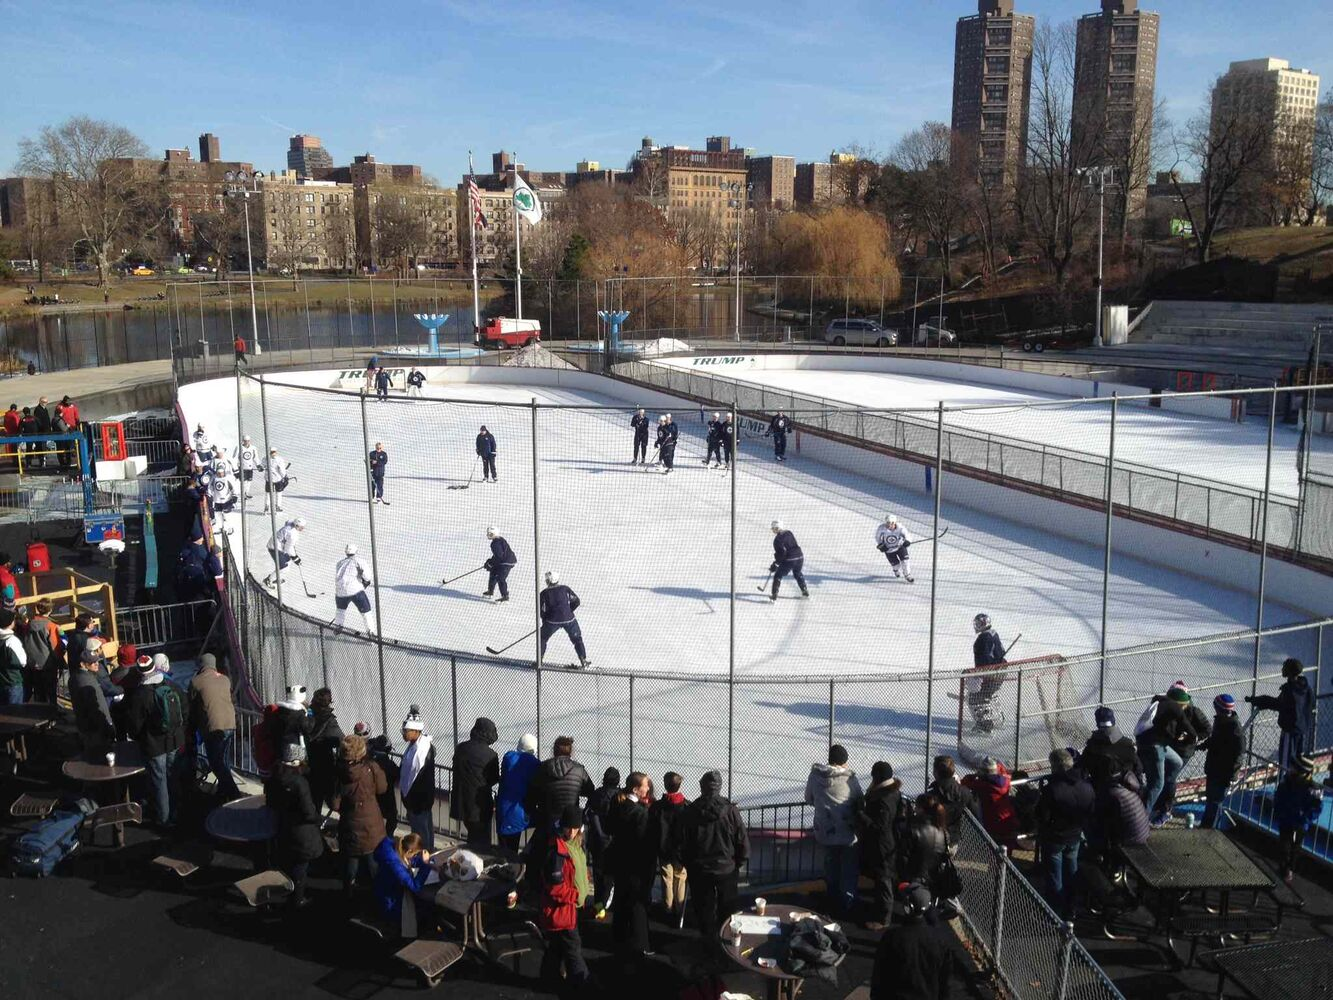 The Manhattan skyline can be seen in the background as the Jets practise in Central Park.